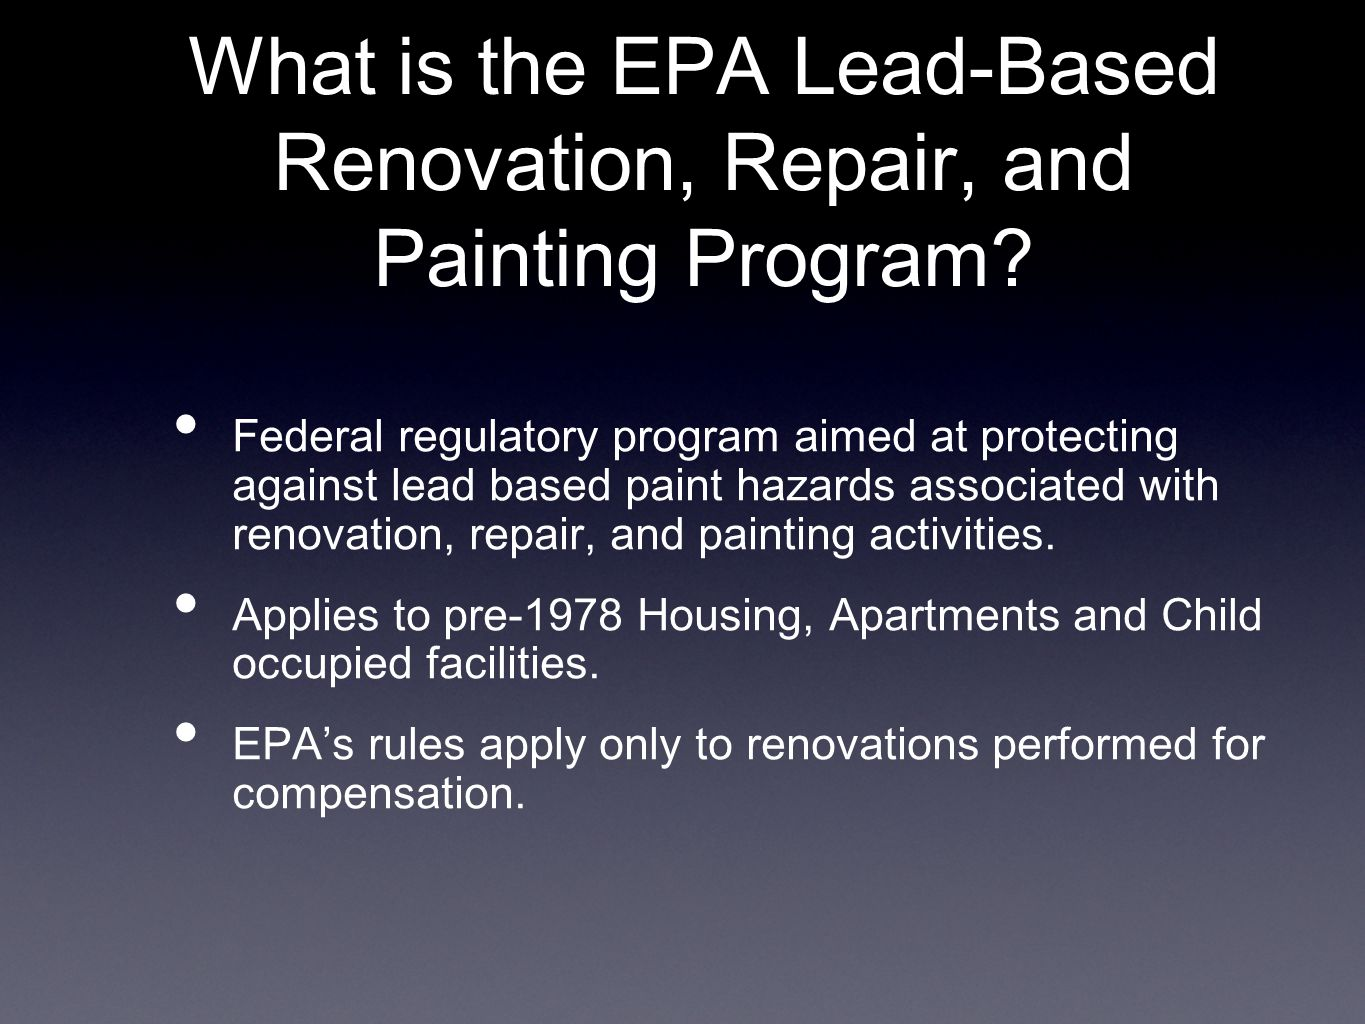 What is the EPA Lead-Based Renovation, Repair, and Painting Program? Federal regulatory program aimed at protecting against lead based paint hazards a